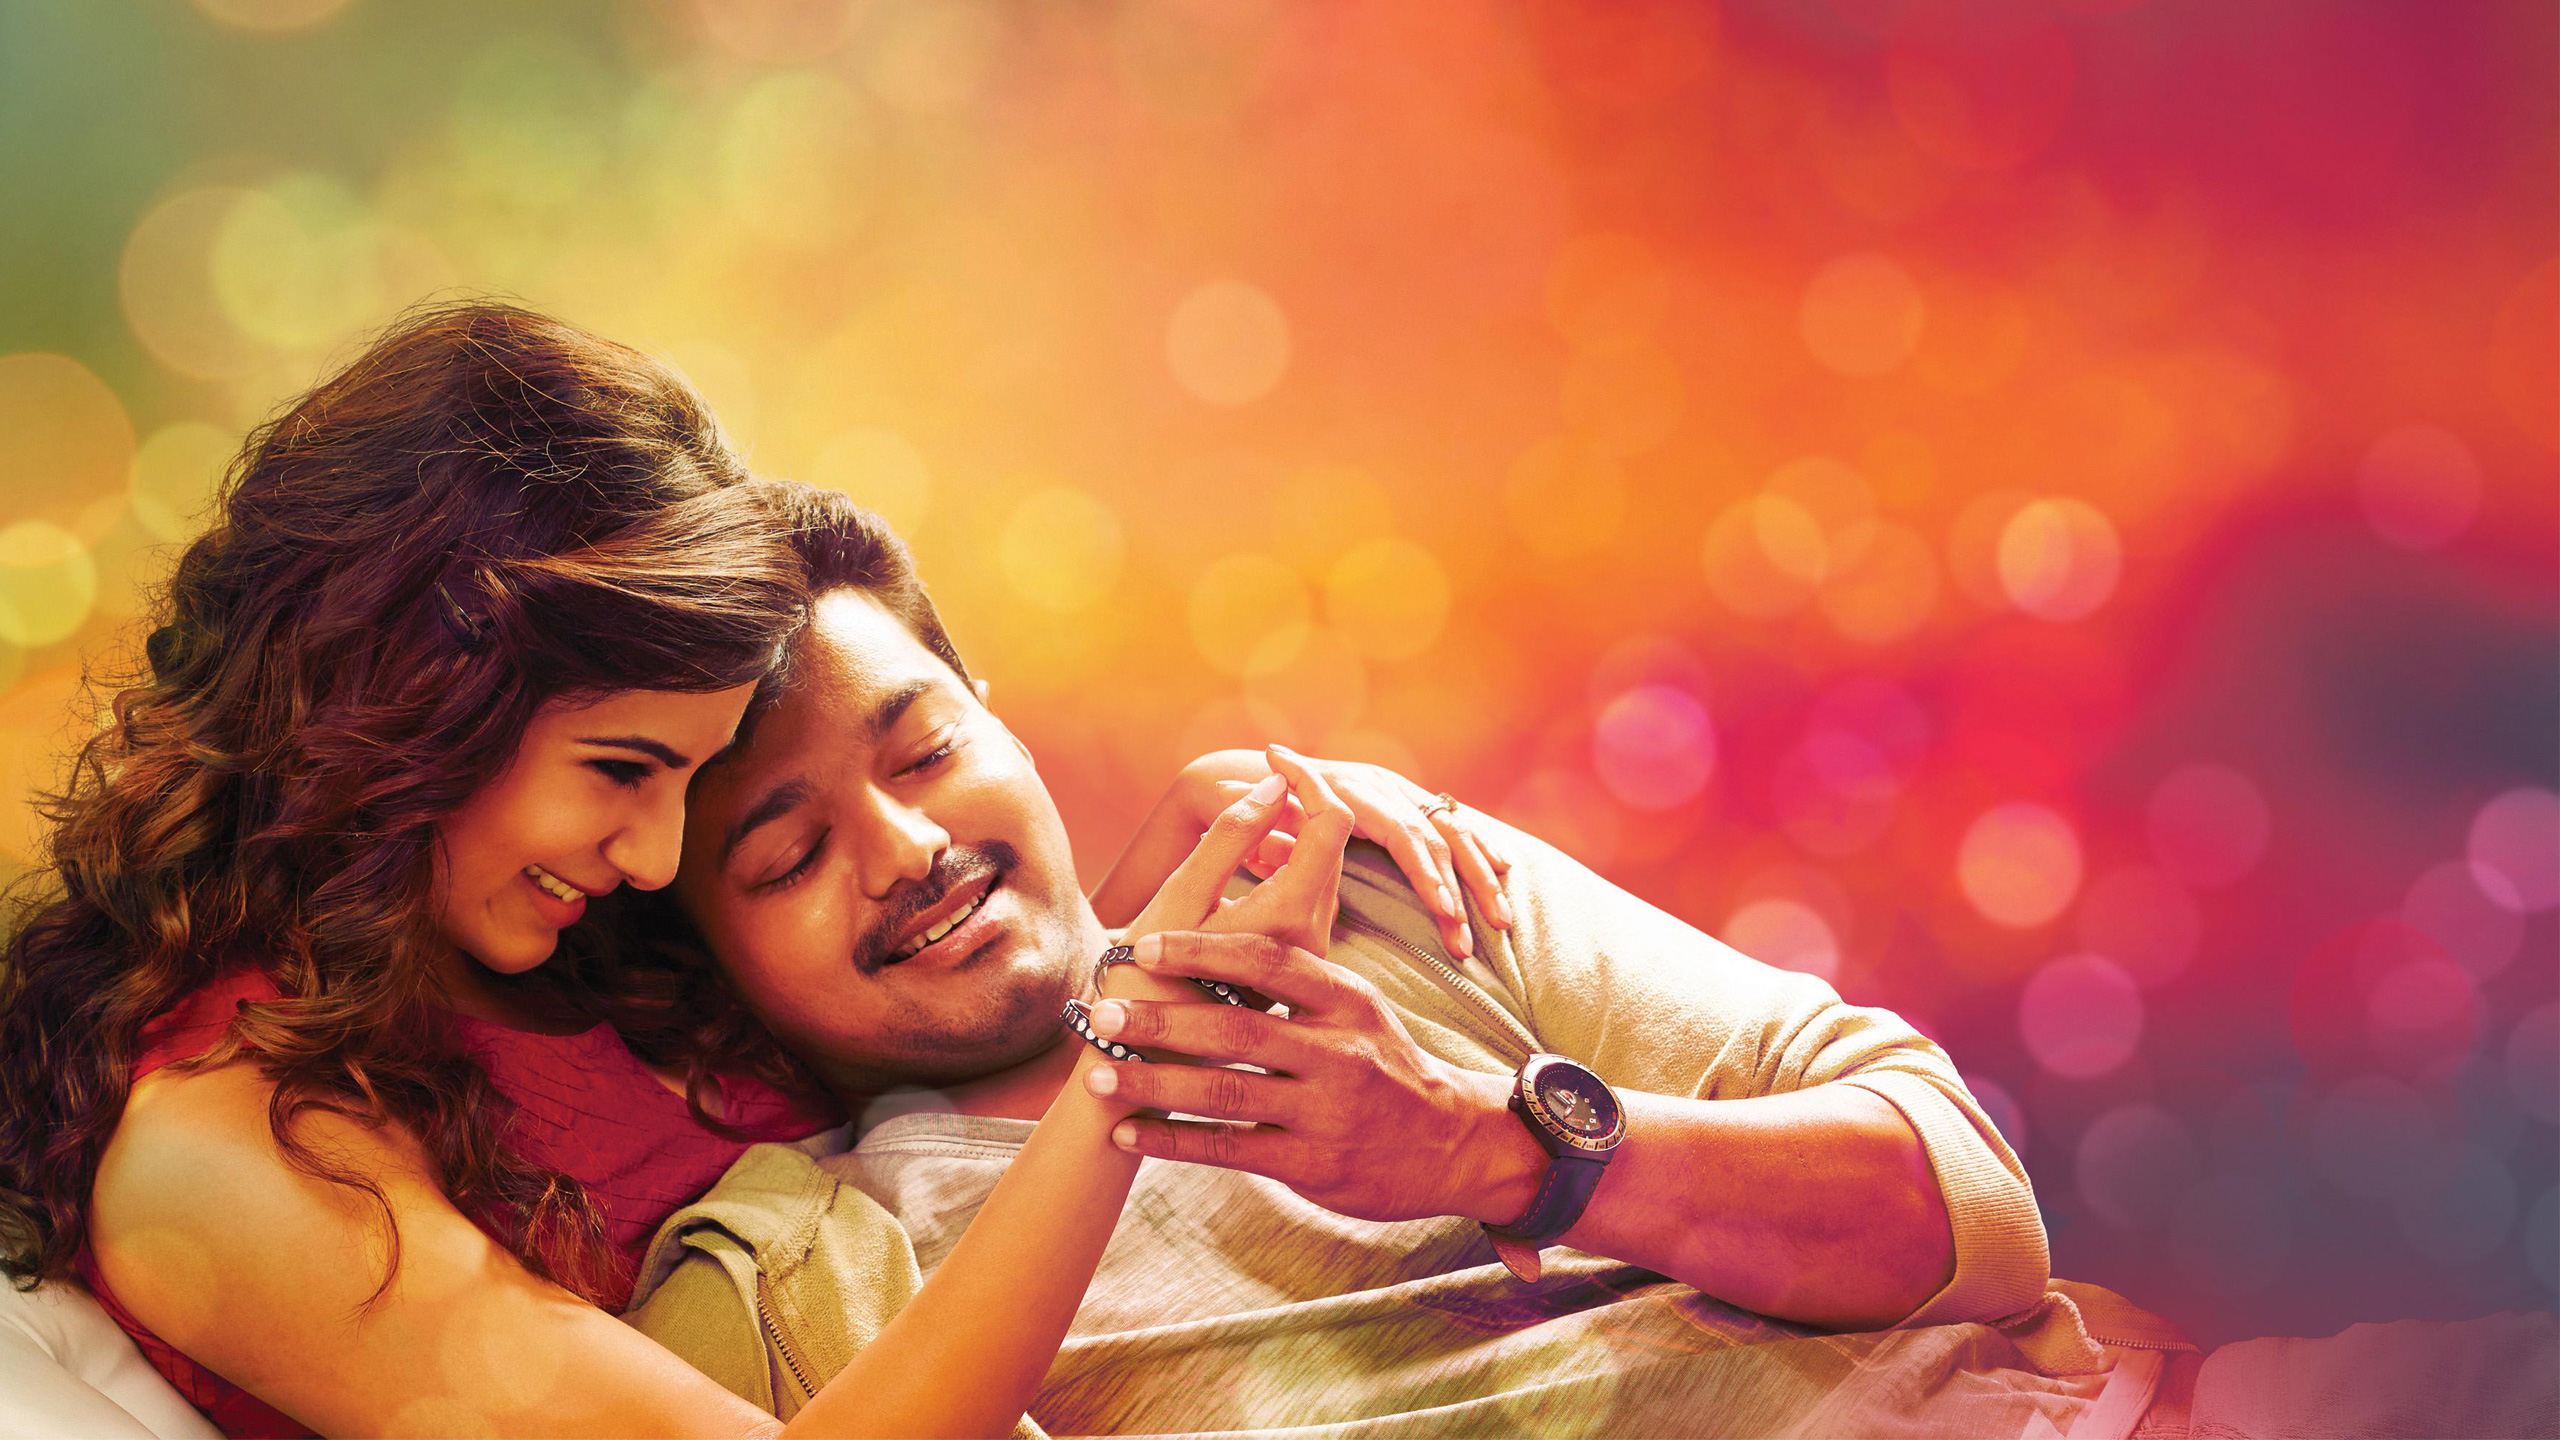 ilayathalapathi vijay with samantha mobile desktop download hd photos